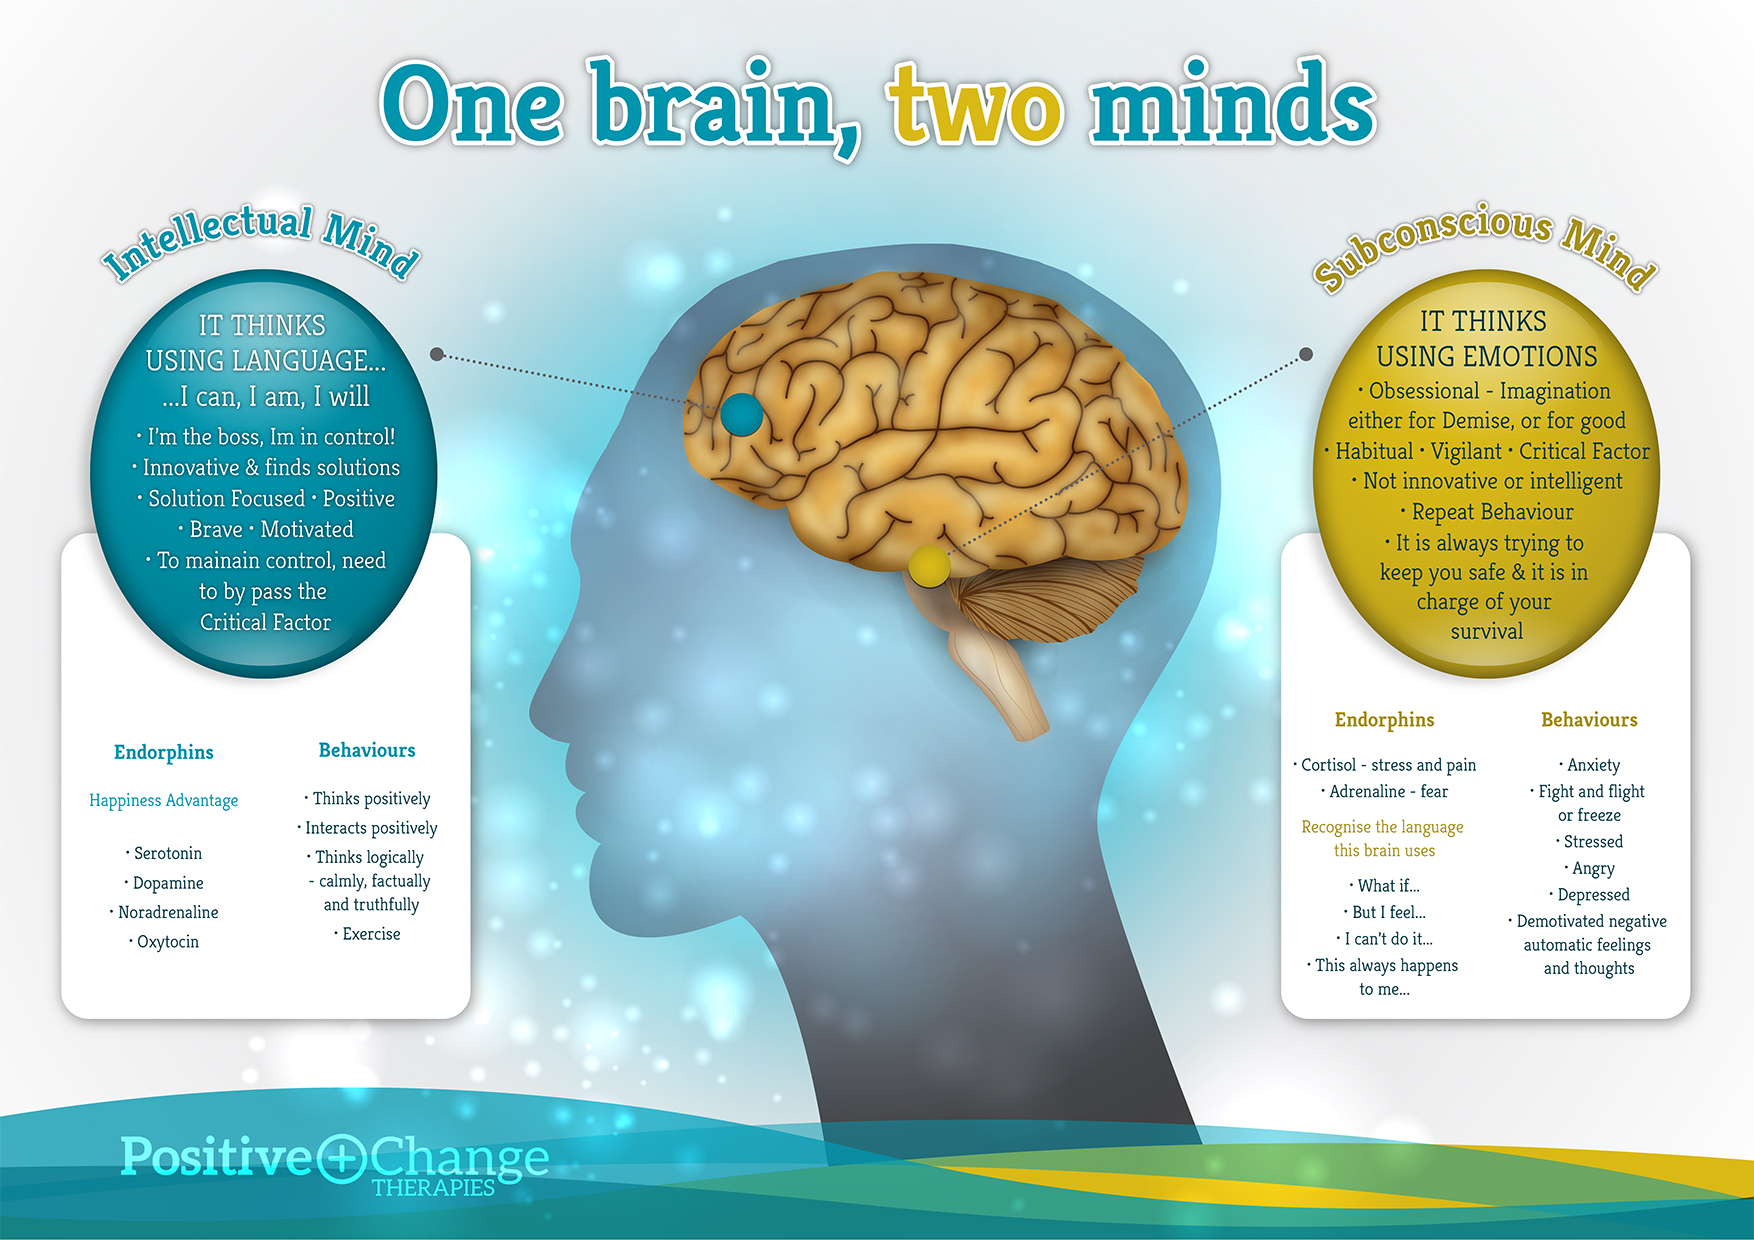 PCT - Your 2 Minds.jpg